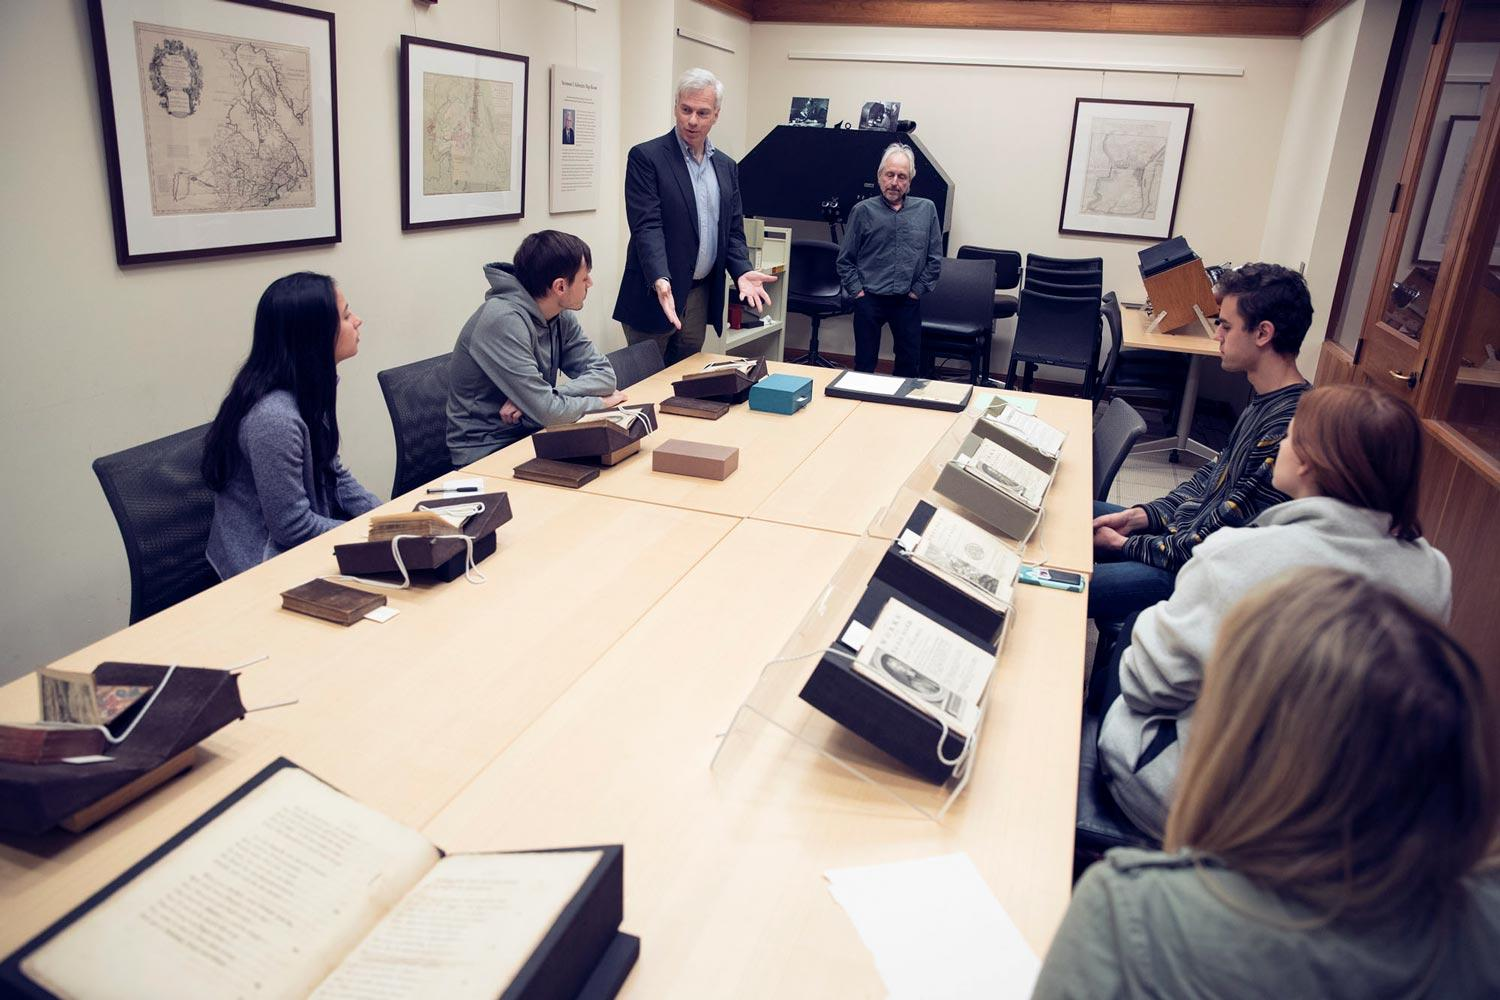 """Early editions of a classic like """"Gulliver's Travels"""" still excite John O'Brien, standing, and his students. George Riser (center, standing) of the University Library set up the books for viewing. (Photos by Dan Addison, University Communications"""